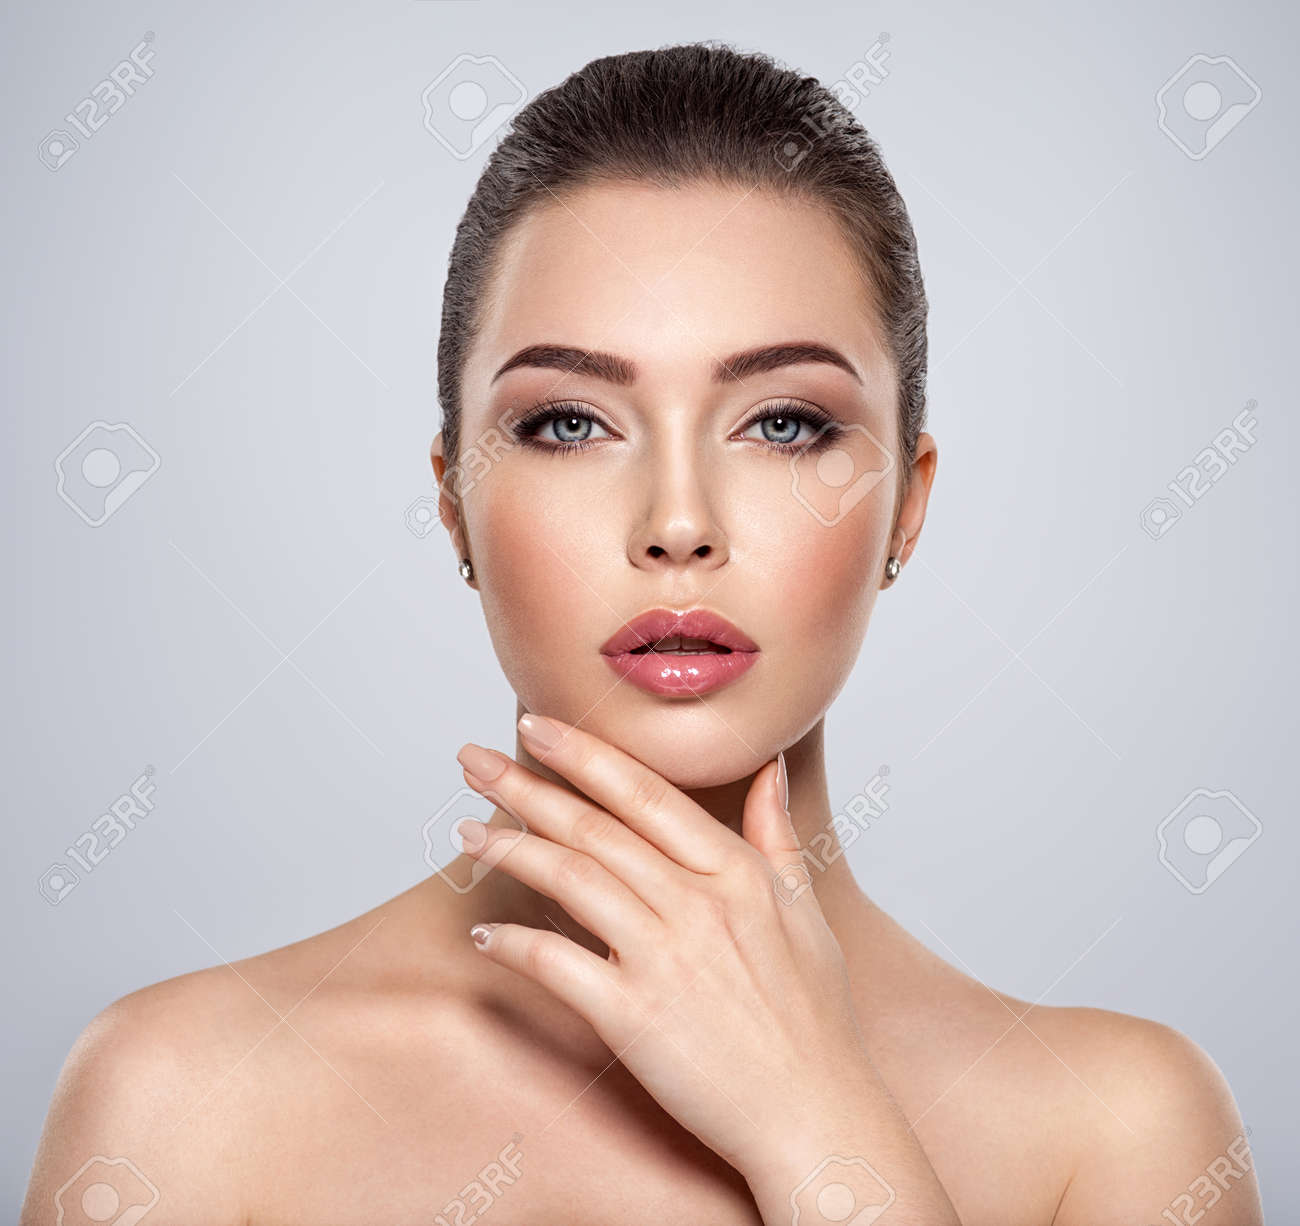 Front portrait of the woman with beauty face - isolated. Beauty face of the young beautiful girl with a healthy skin. Closeup portrait of an attractive female with a beautiful eyes. Skin care concept. - 157677506